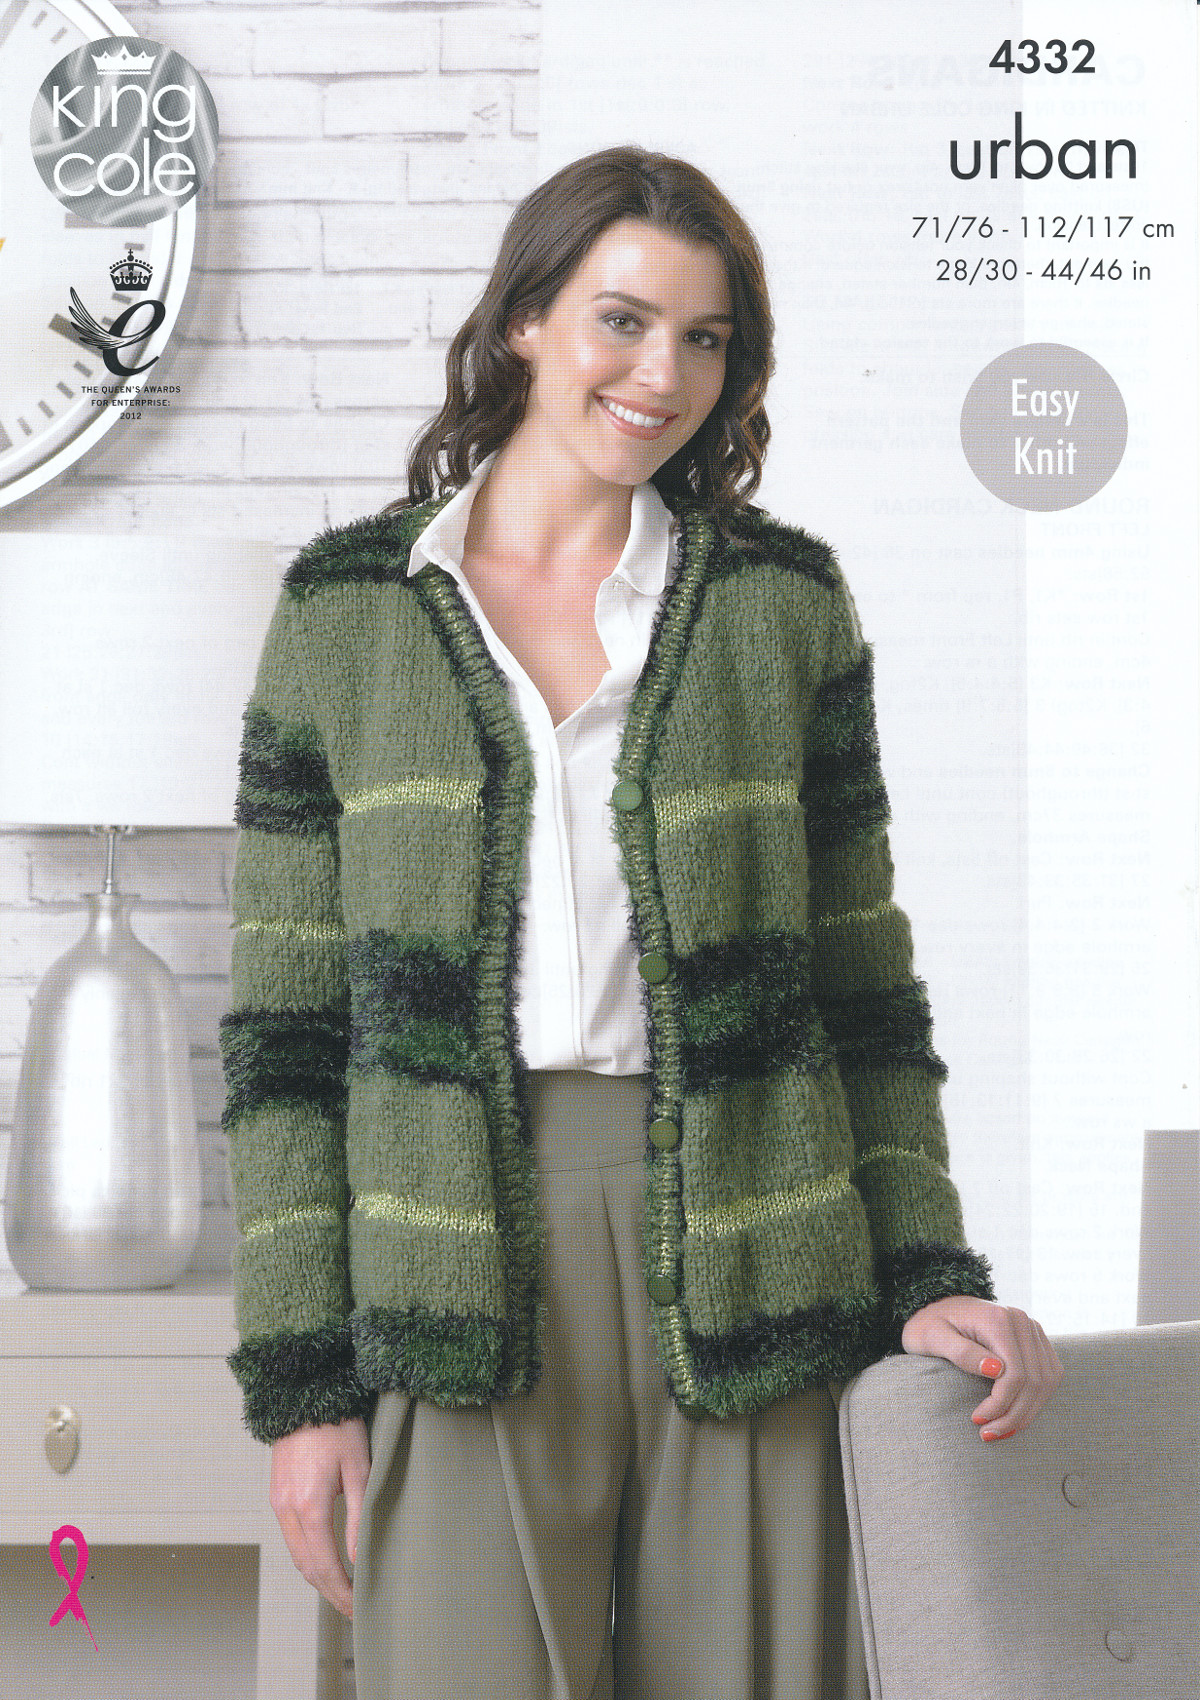 Free Knitting Patterns For Dogs Sweater : King Cole Urban Knitting Pattern Ladies Easy Knit Long Sleeved Cardigans 4332